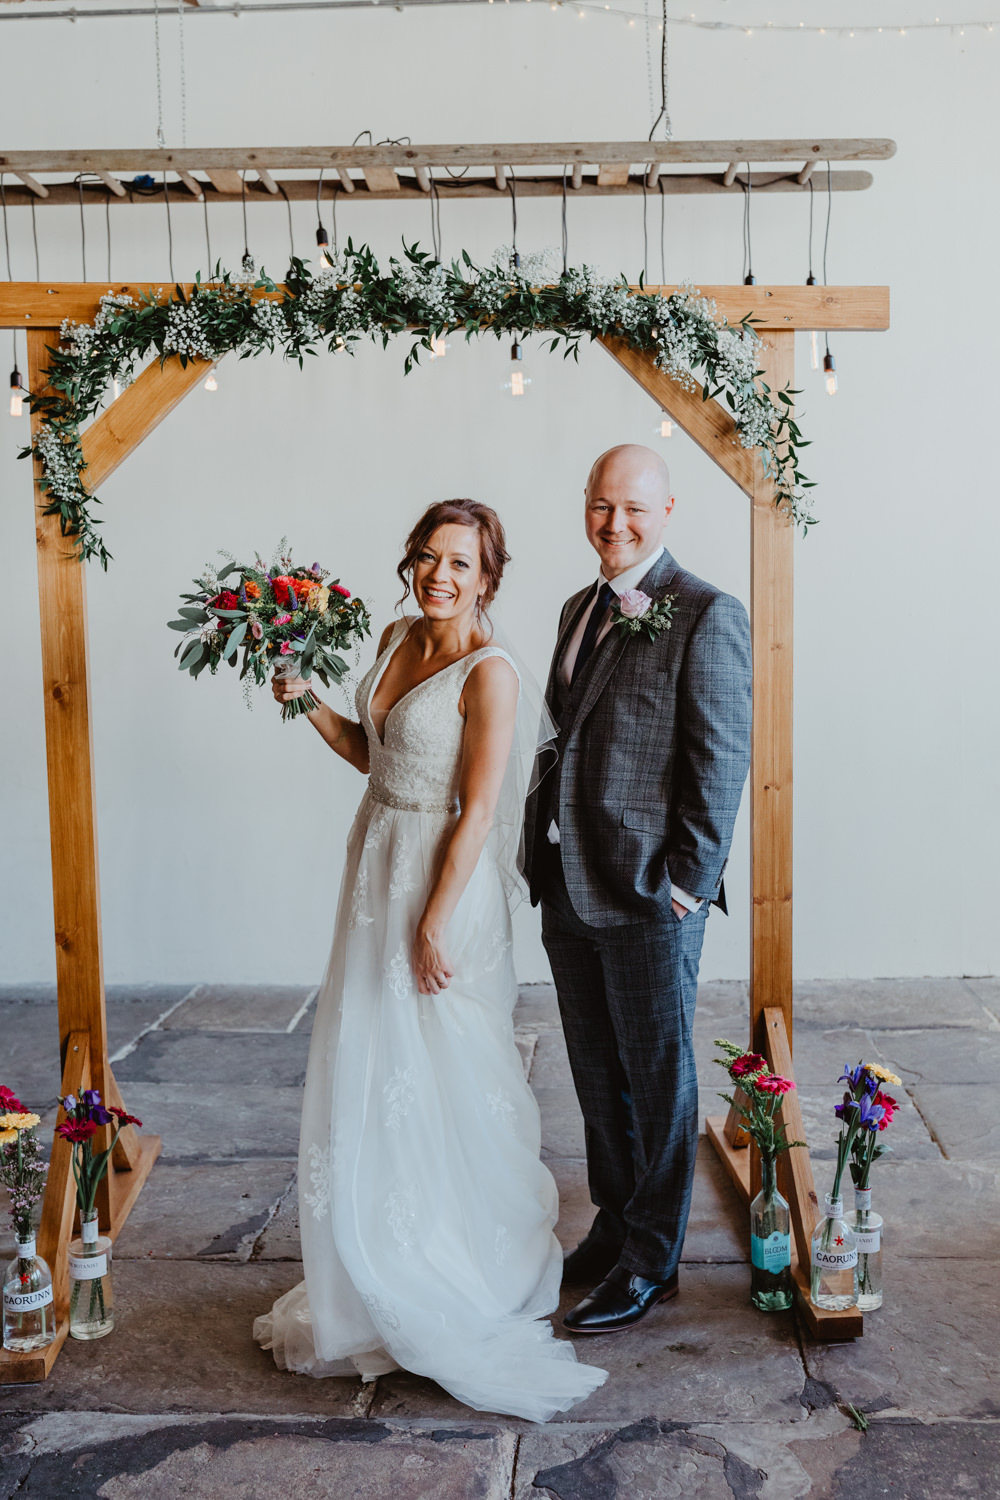 Arches Dean Clough Wedding Stevie Jay Photography Wooden Frame Backdrop Arch Greenery Foliage Festoon Lights Edison Lighting